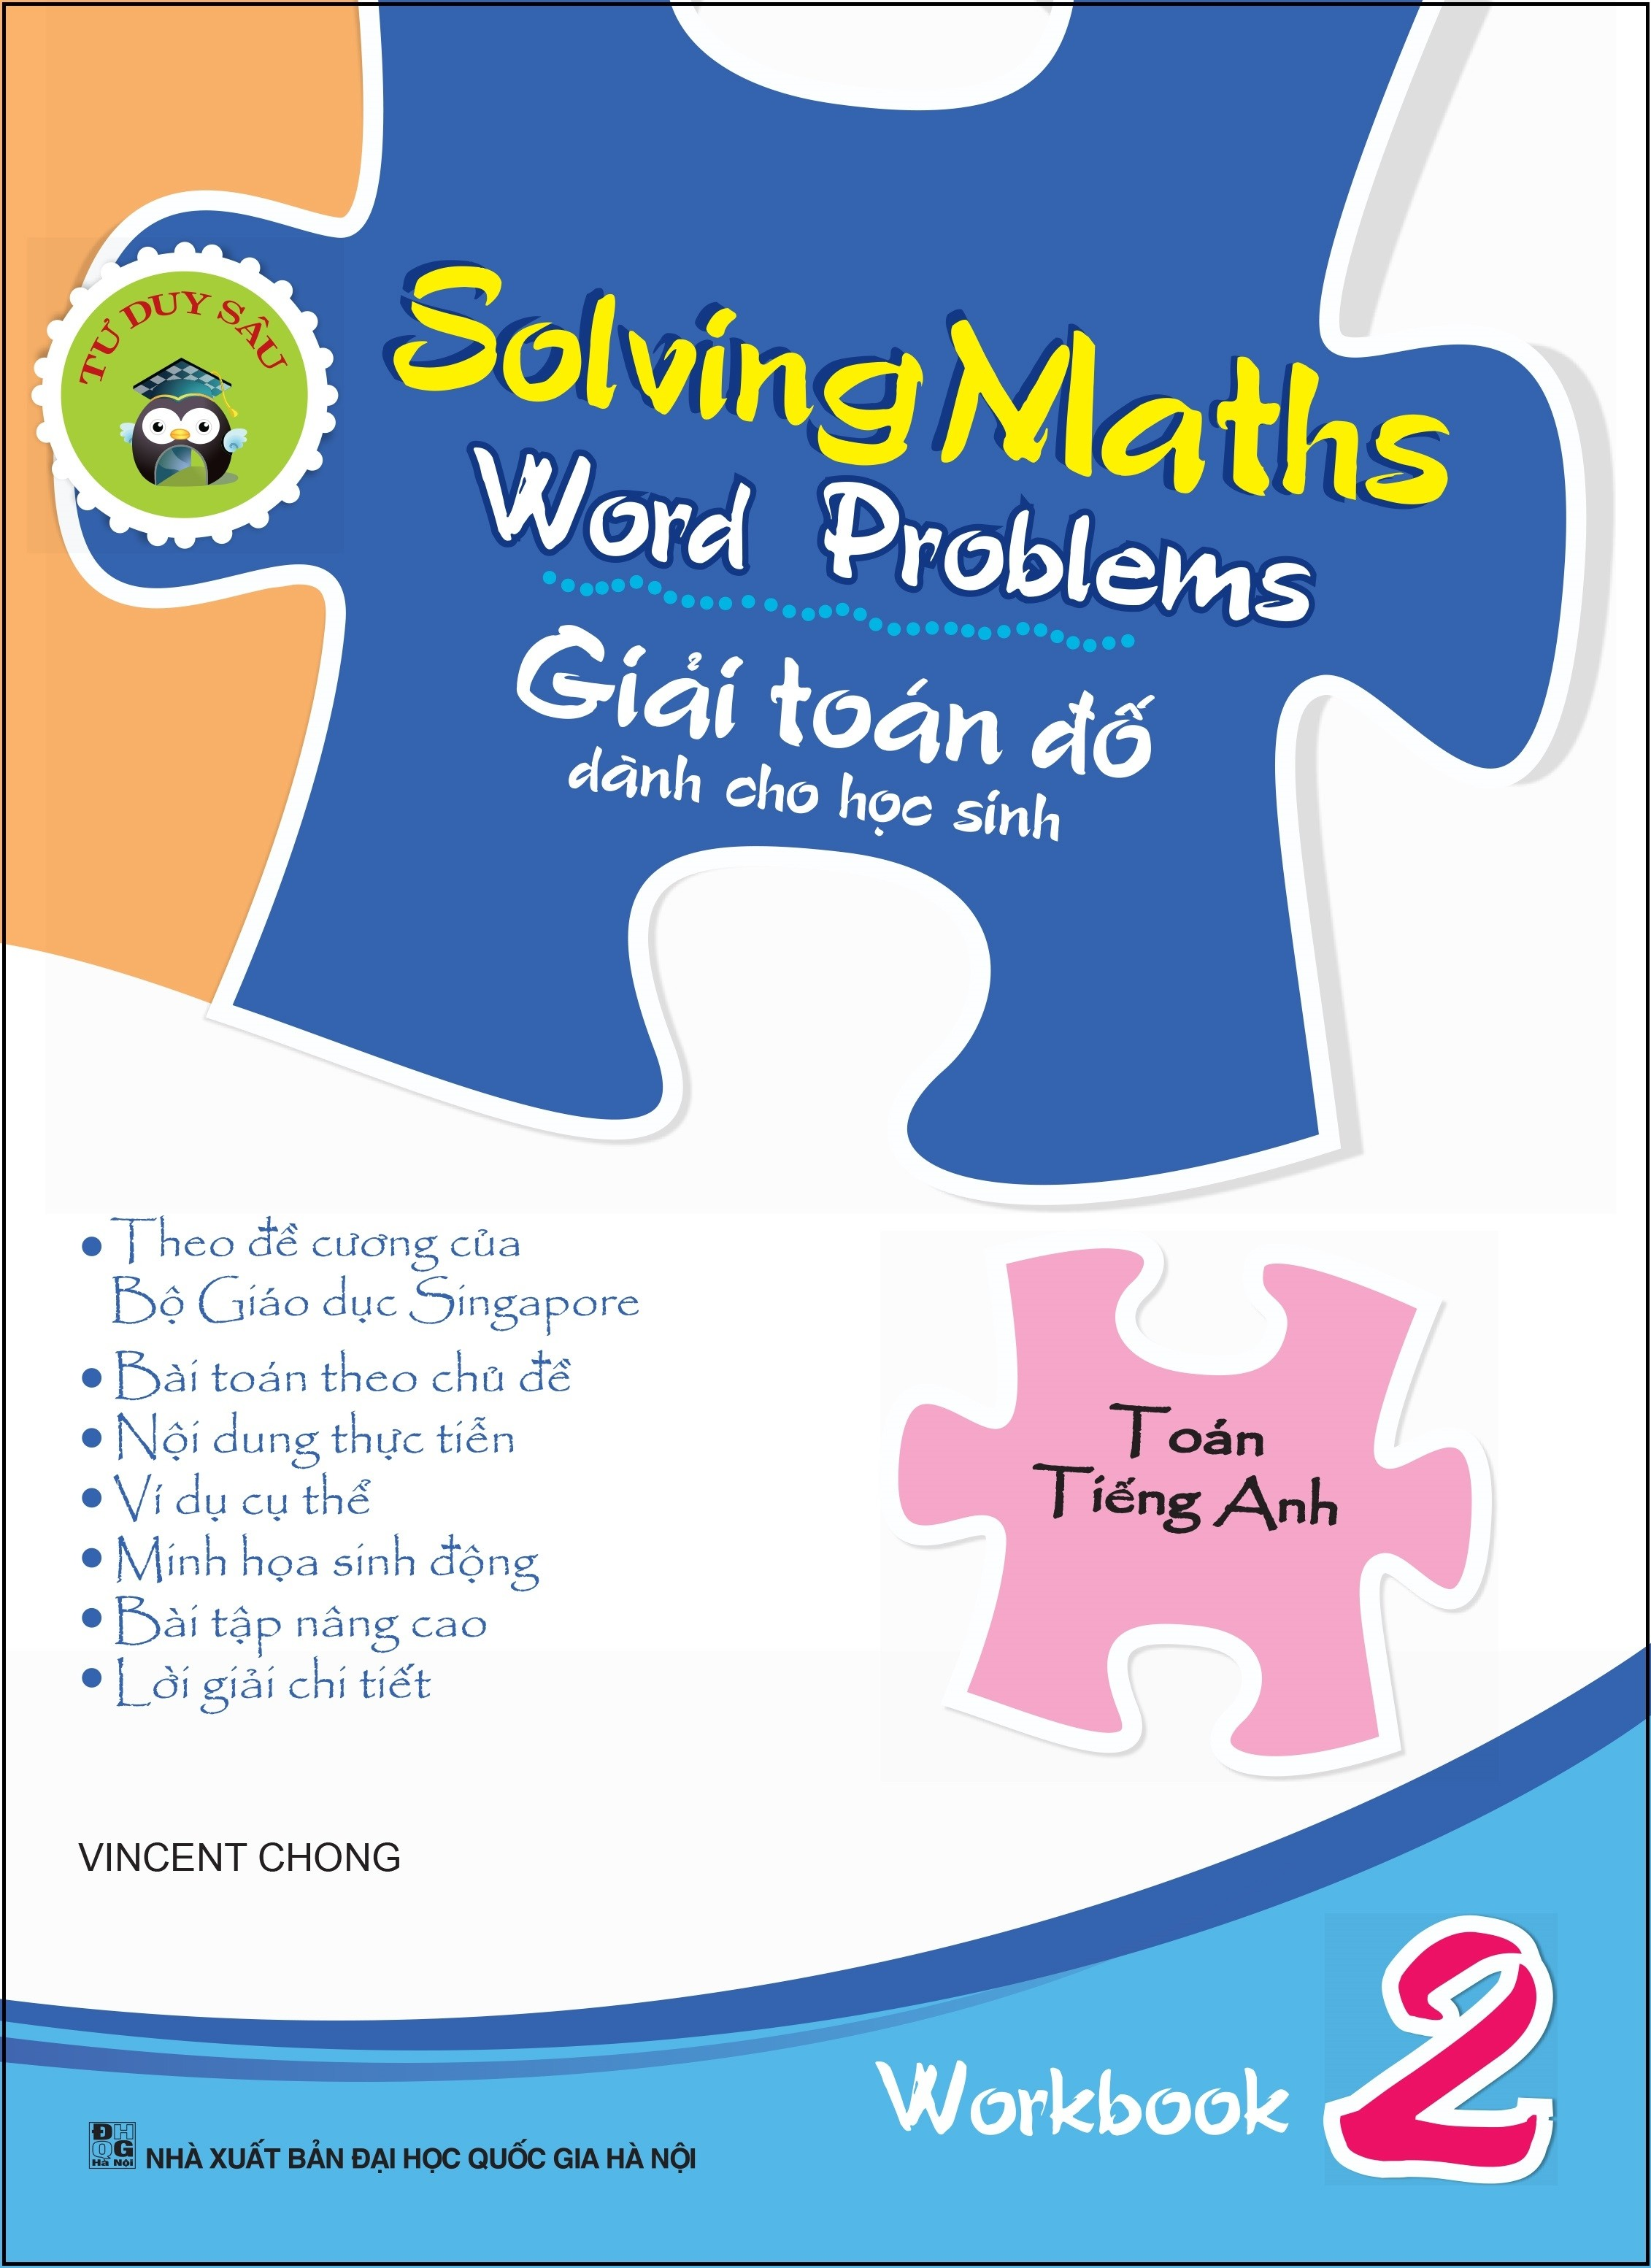 solving maths word problems - giai toan do danh cho hoc sinh - workbook 2